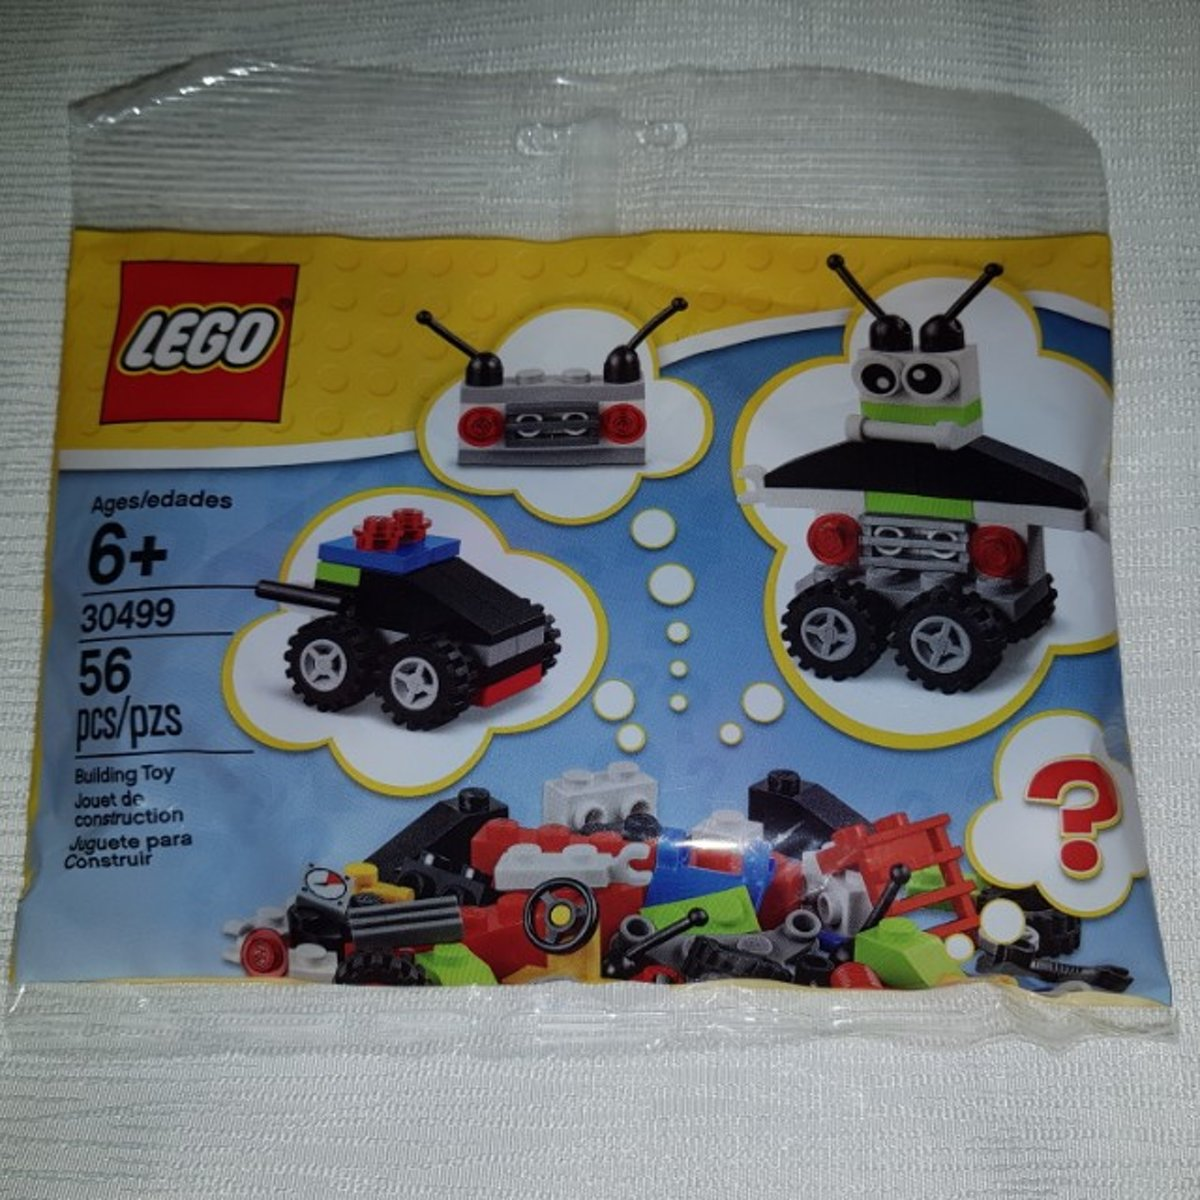 LEGO Creator 30499 Robot Builds (polybag)